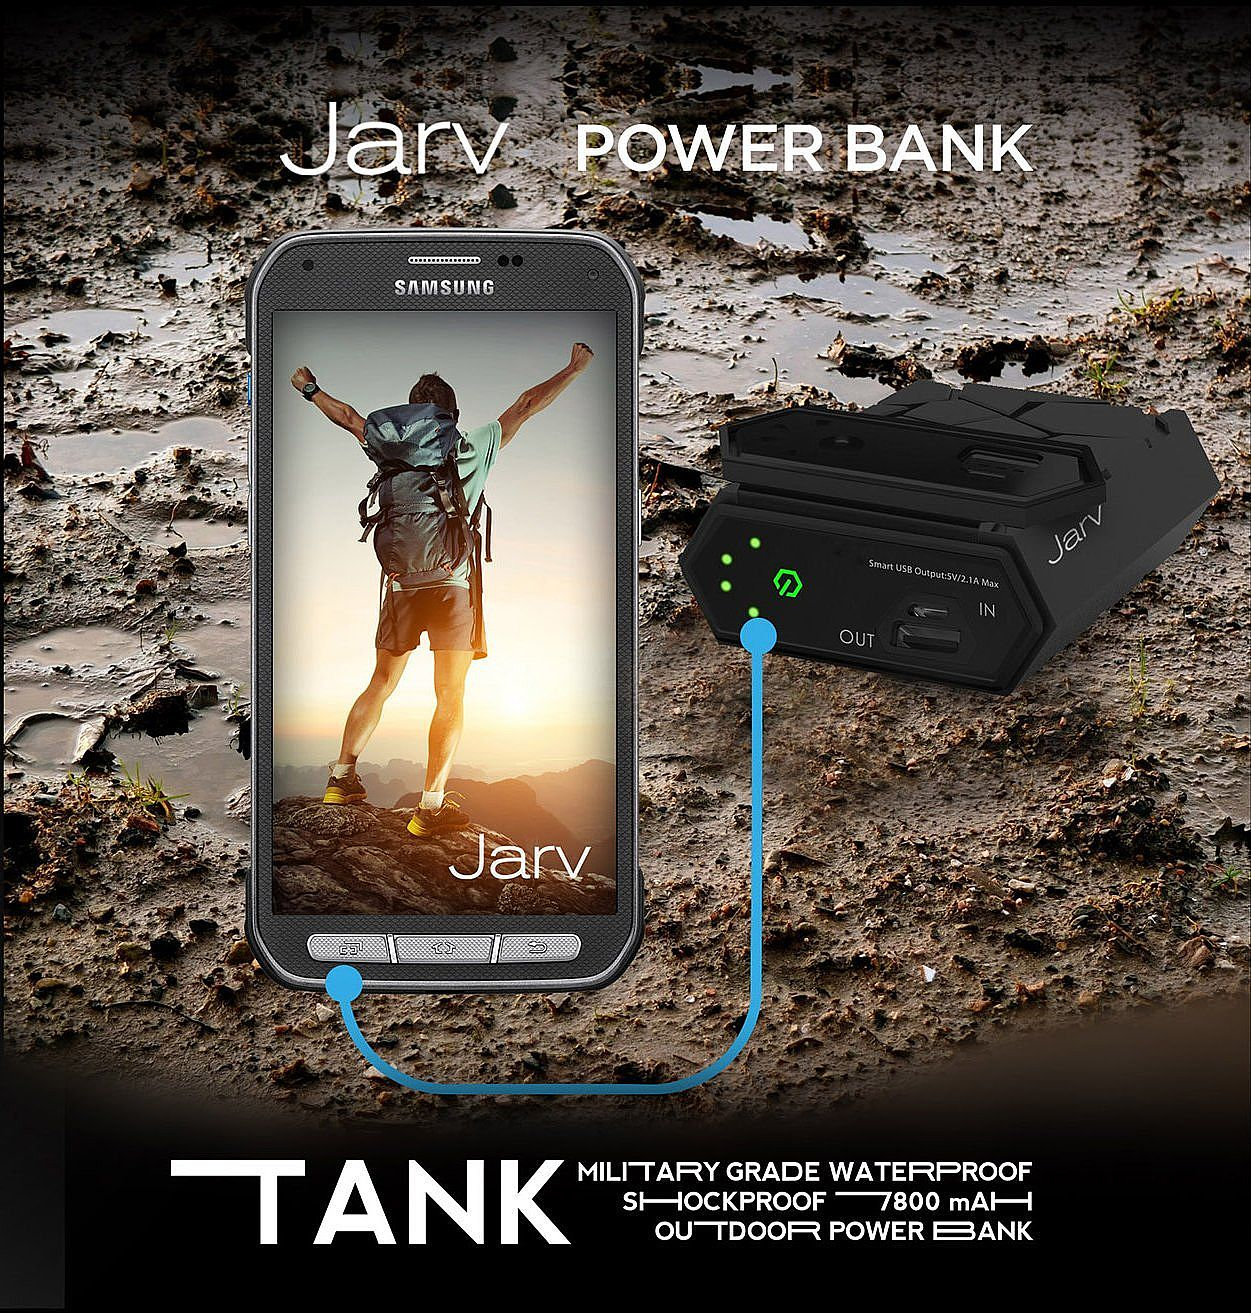 Jarv Tank Ip67 Military Grade Waterproof Shockproof 7800